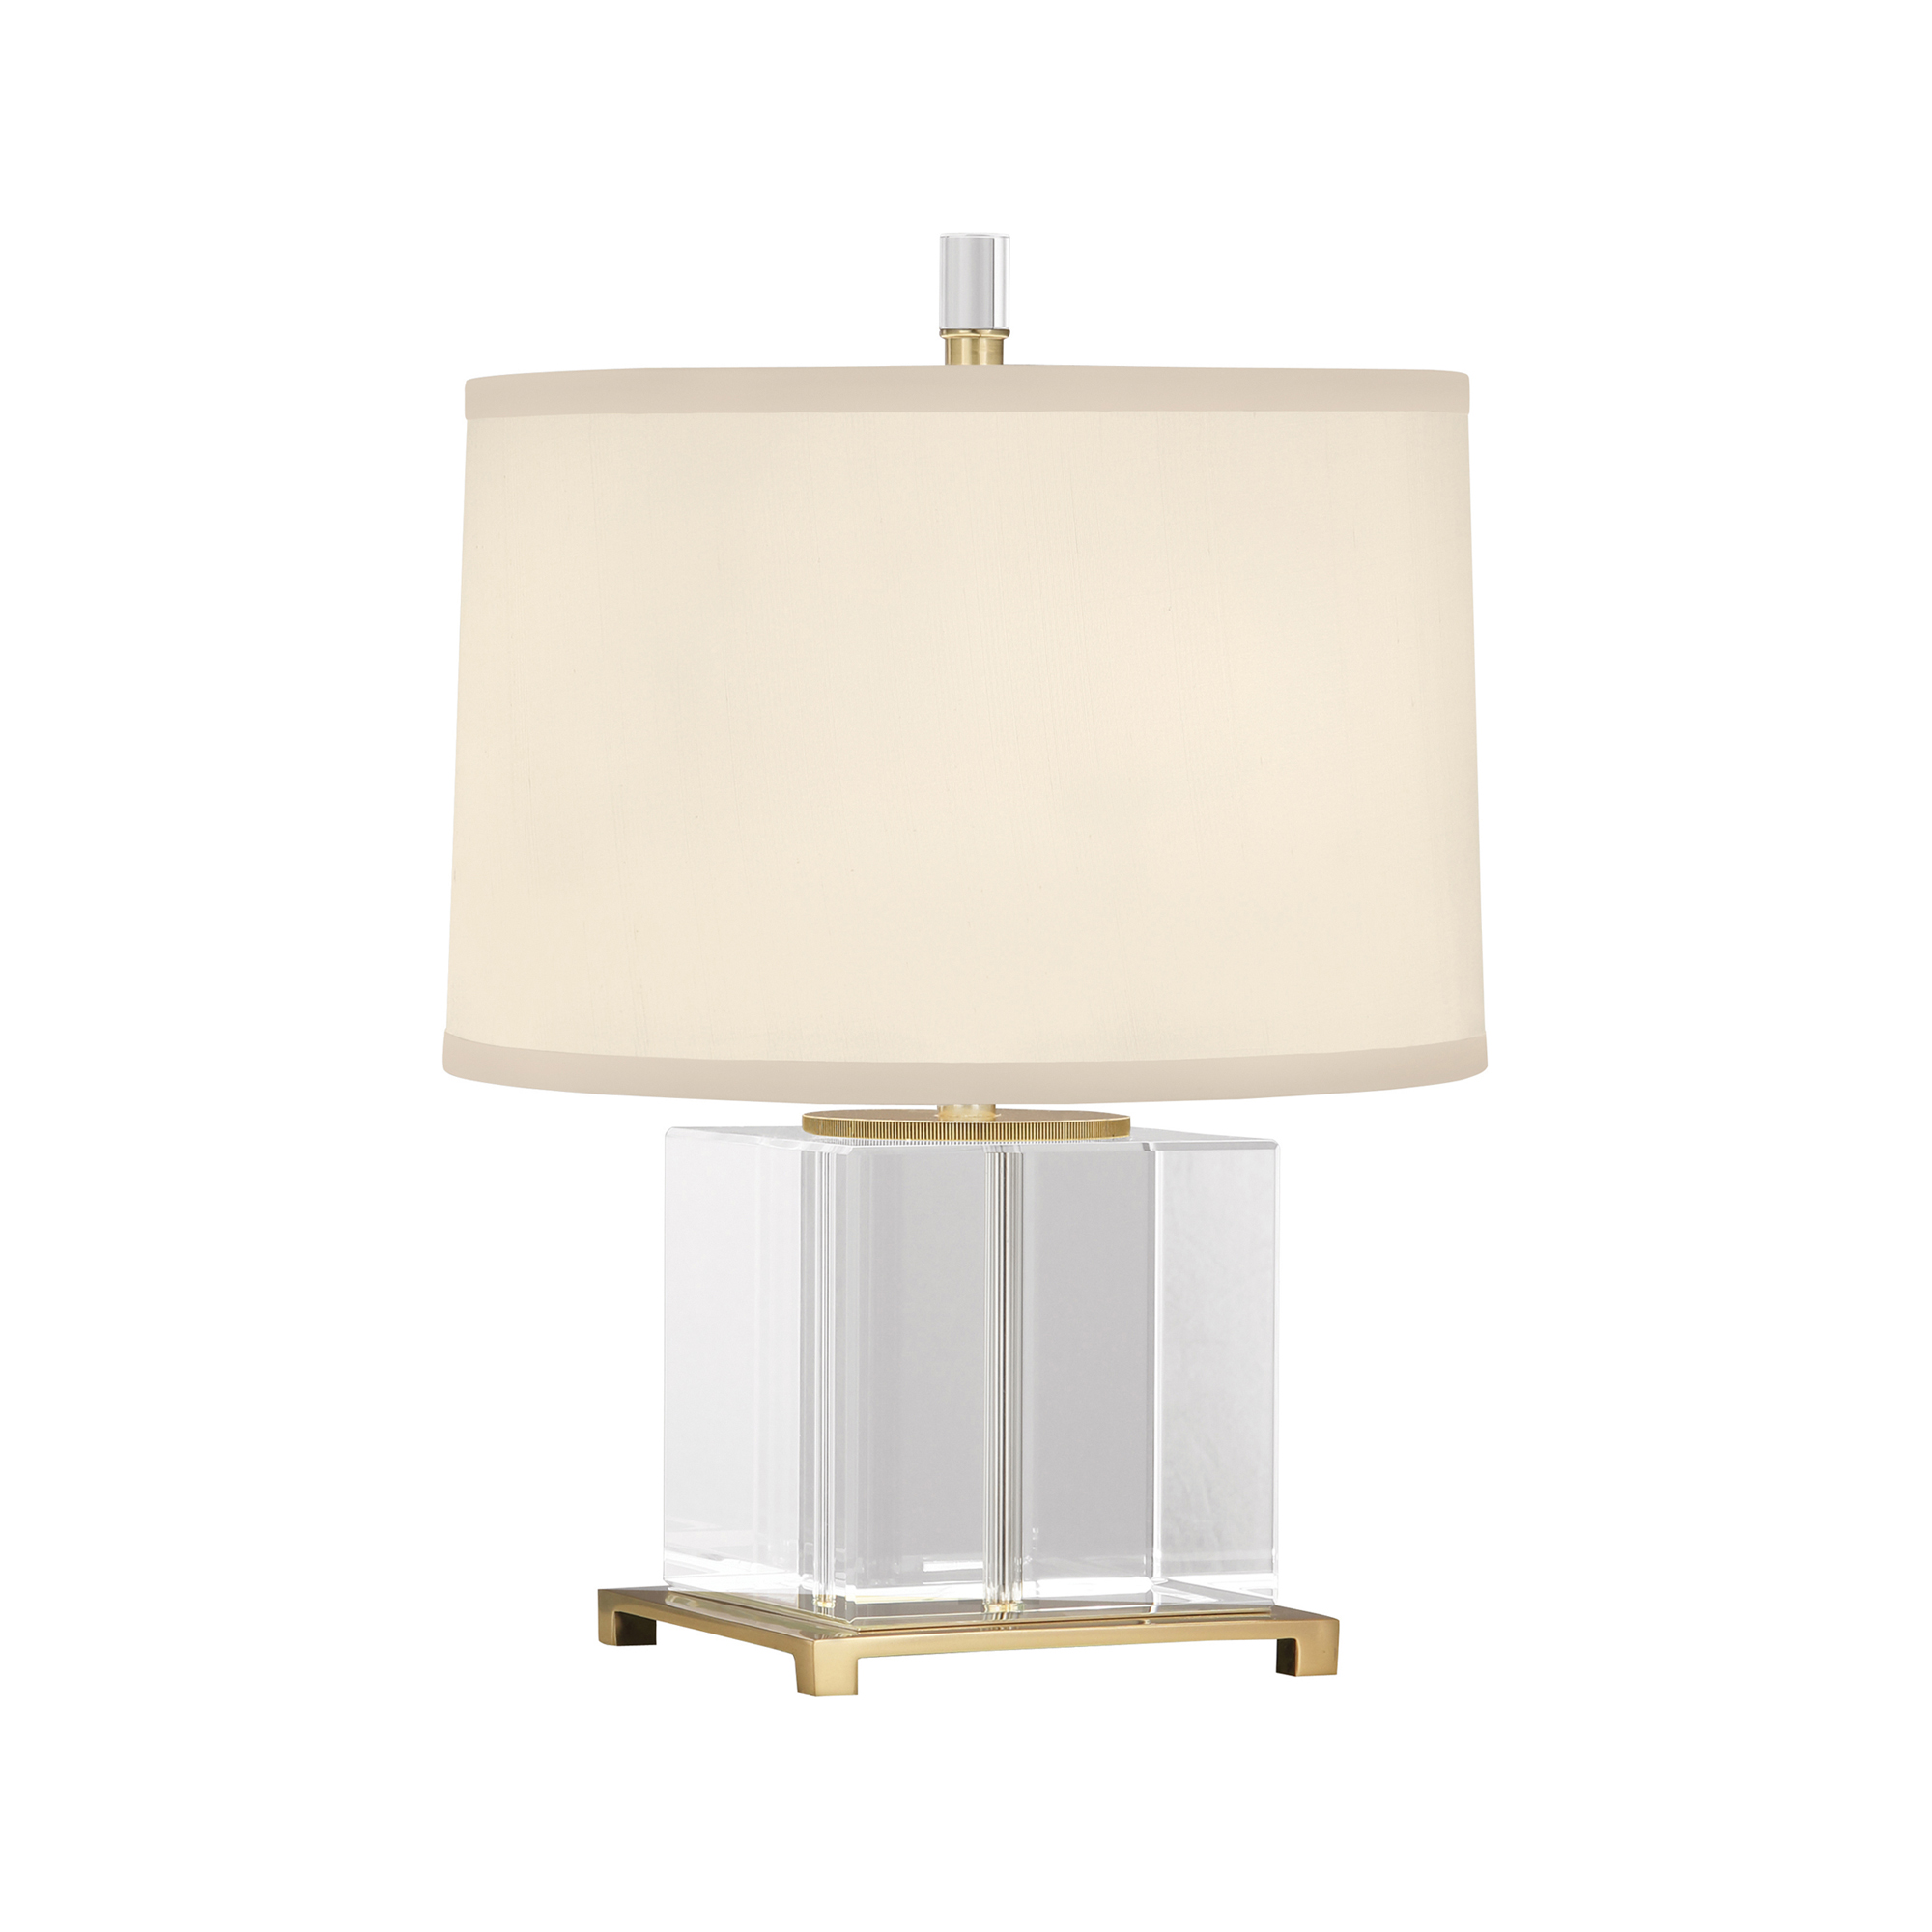 Williamsburg Finnie Accent Lamp Style #362